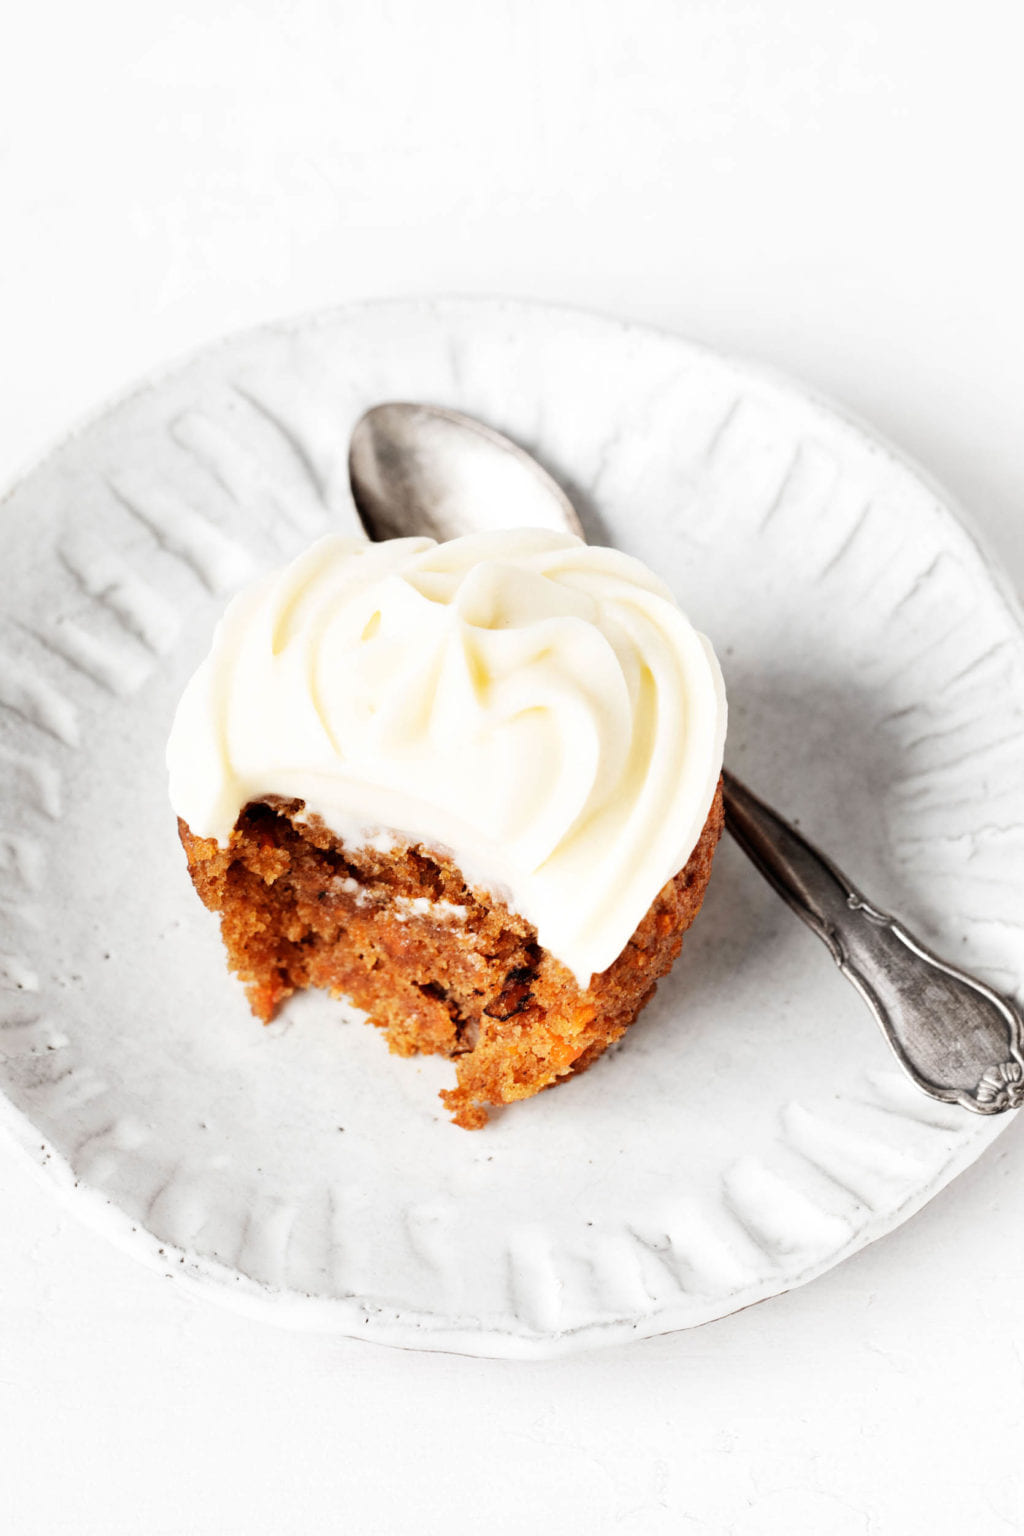 A vegan carrot cake cupcake is placed on a small ceramic white plate. There is a small spoon next to the cupcakes.